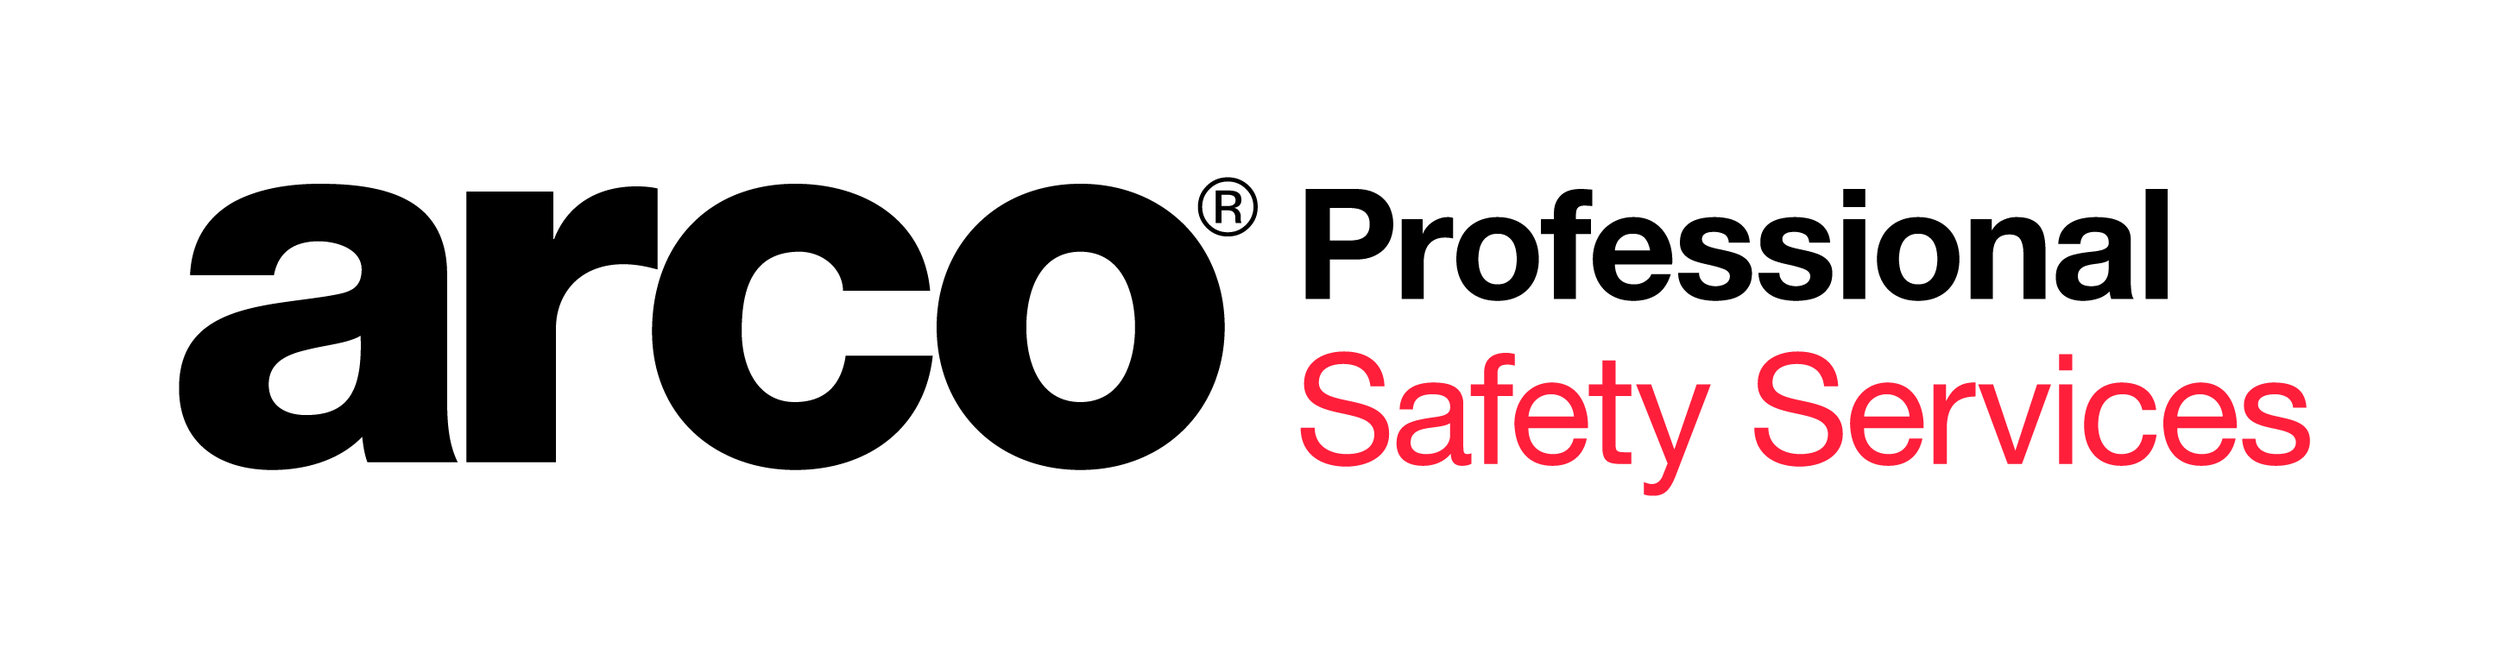 ARCO Professional Safety Services_Master Logo.jpg